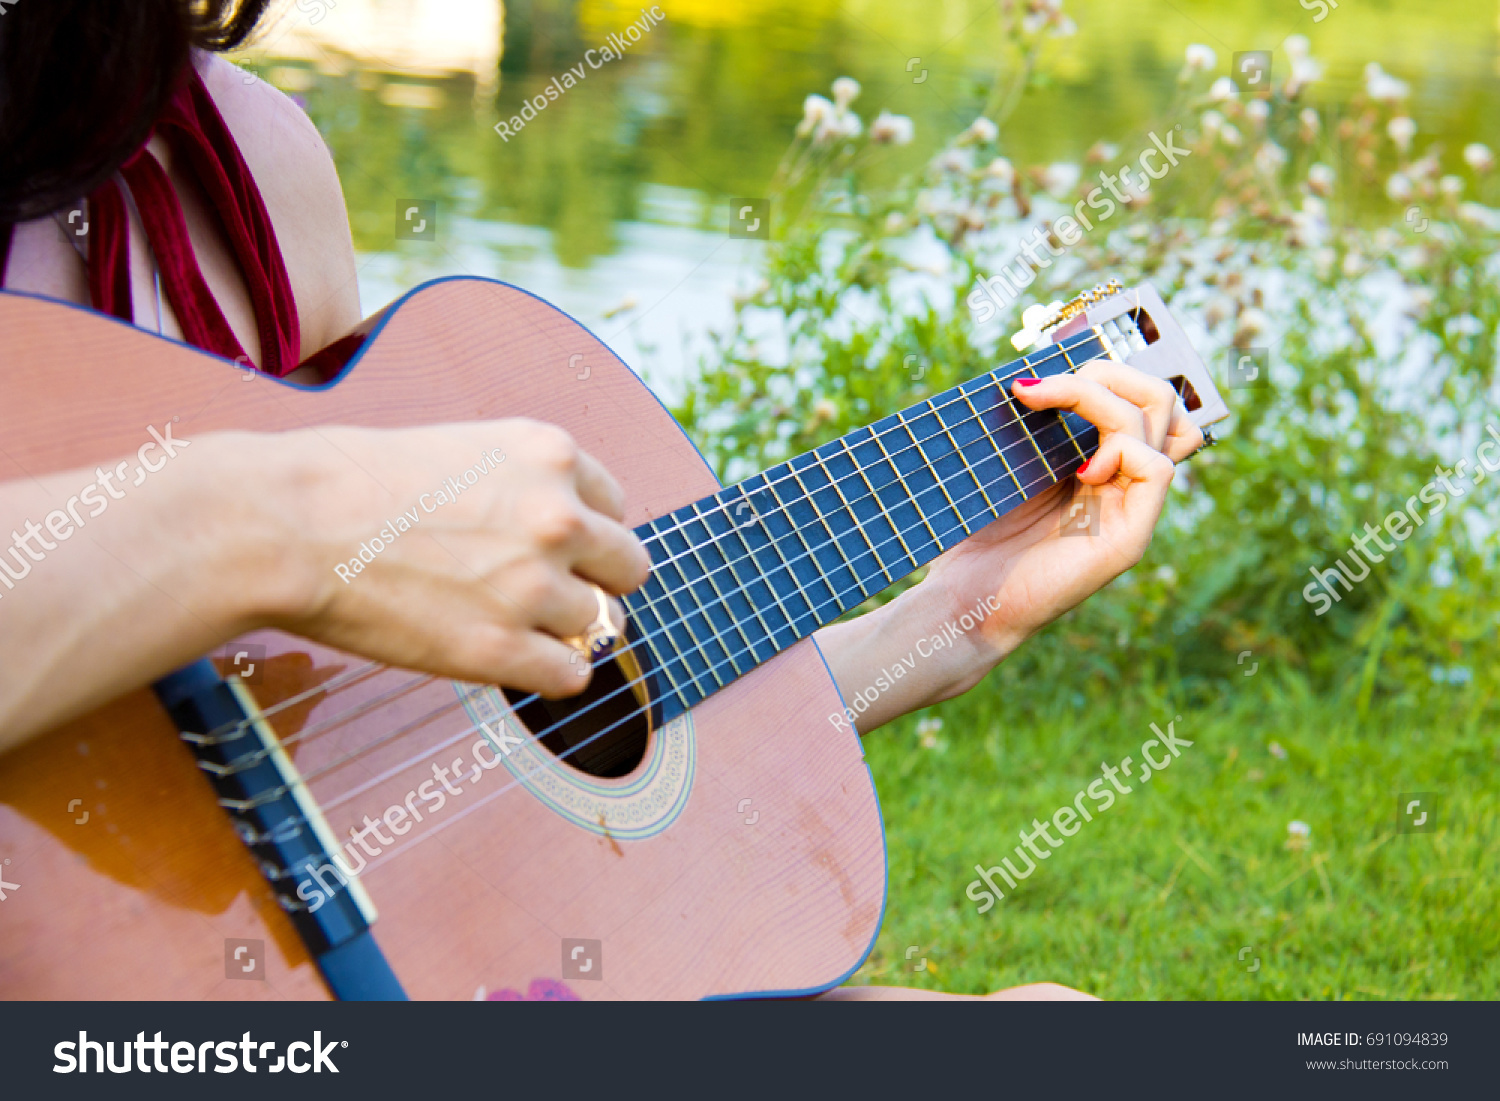 Female Hands Holding Chords Playing Guitar Stock Photo Edit Now